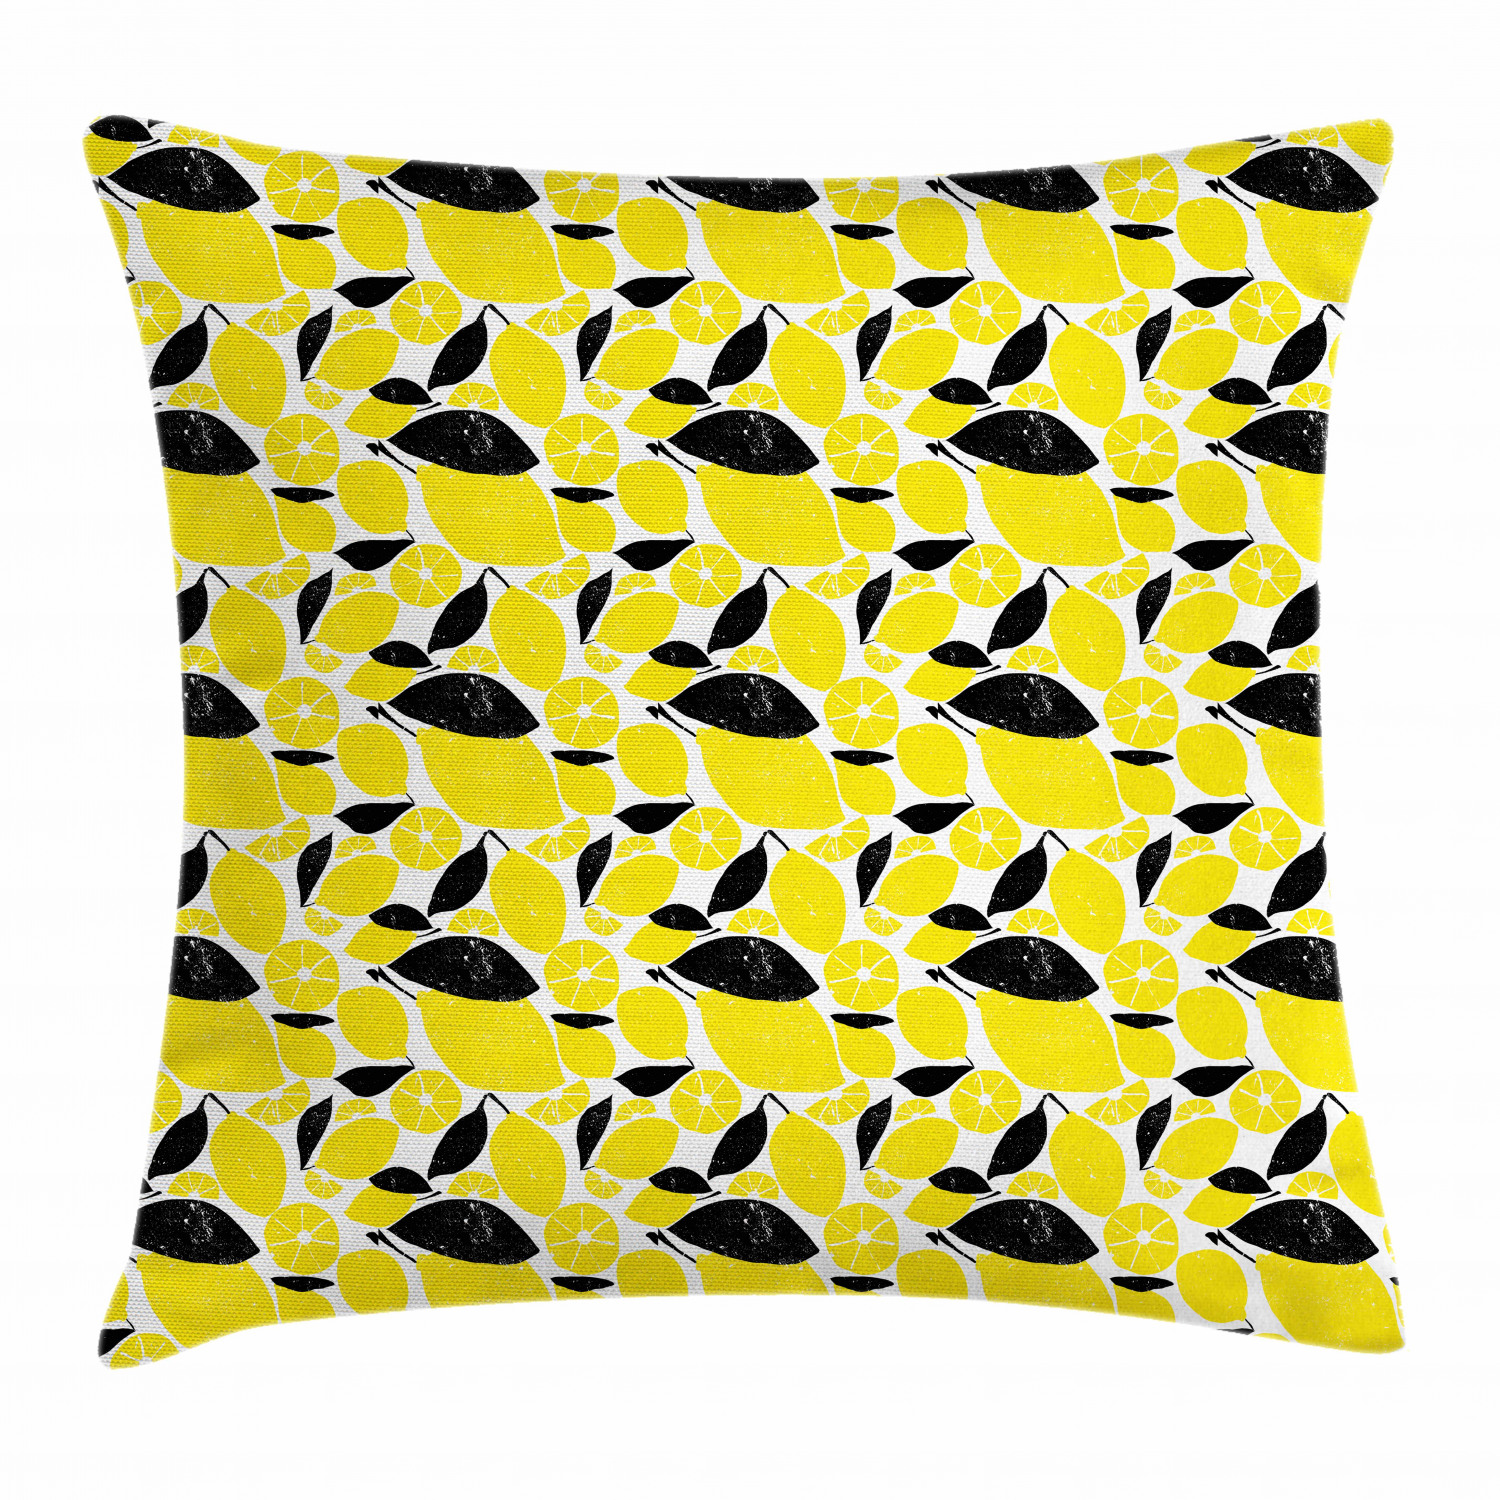 lemons throw pillow cushion cover summer breeze sketched yellow lemon figures and skinless half slices decorative square accent pillow case 18 x 18